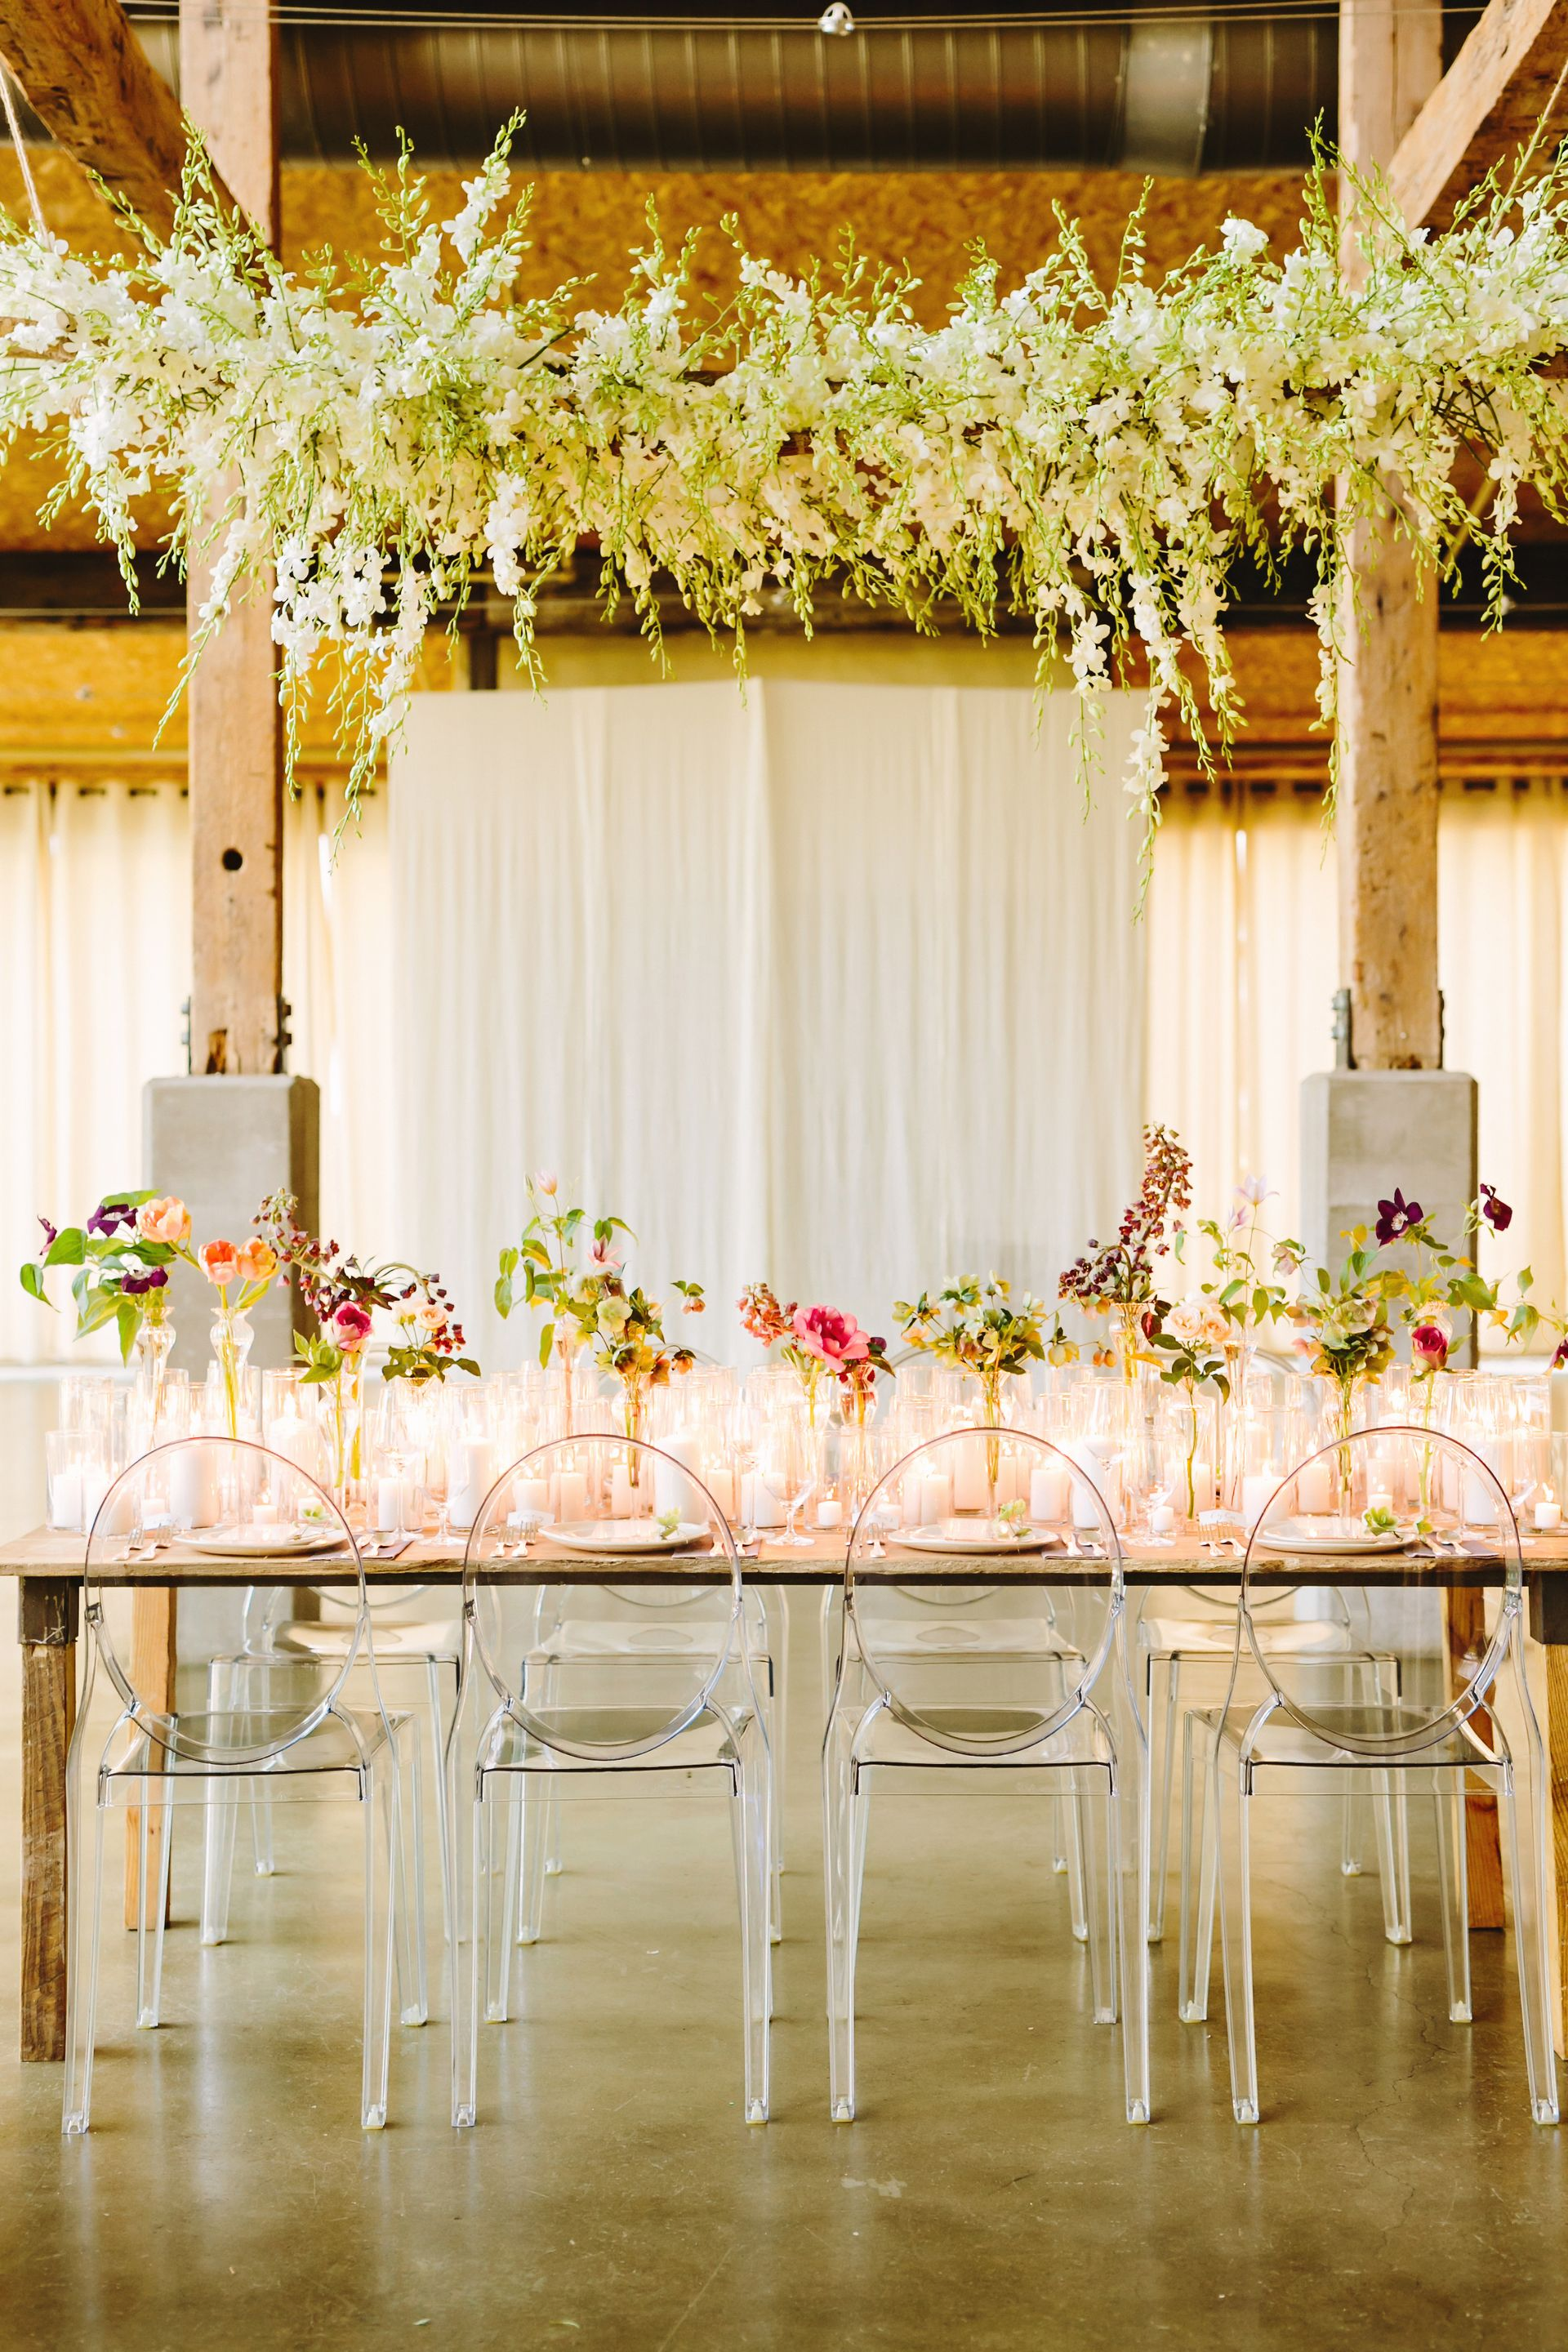 Lucite chairs, romantic reception, white candles galore, vases of pink florals, hanging white floral arrangement from the ceiling // Julie Wilhite Photography